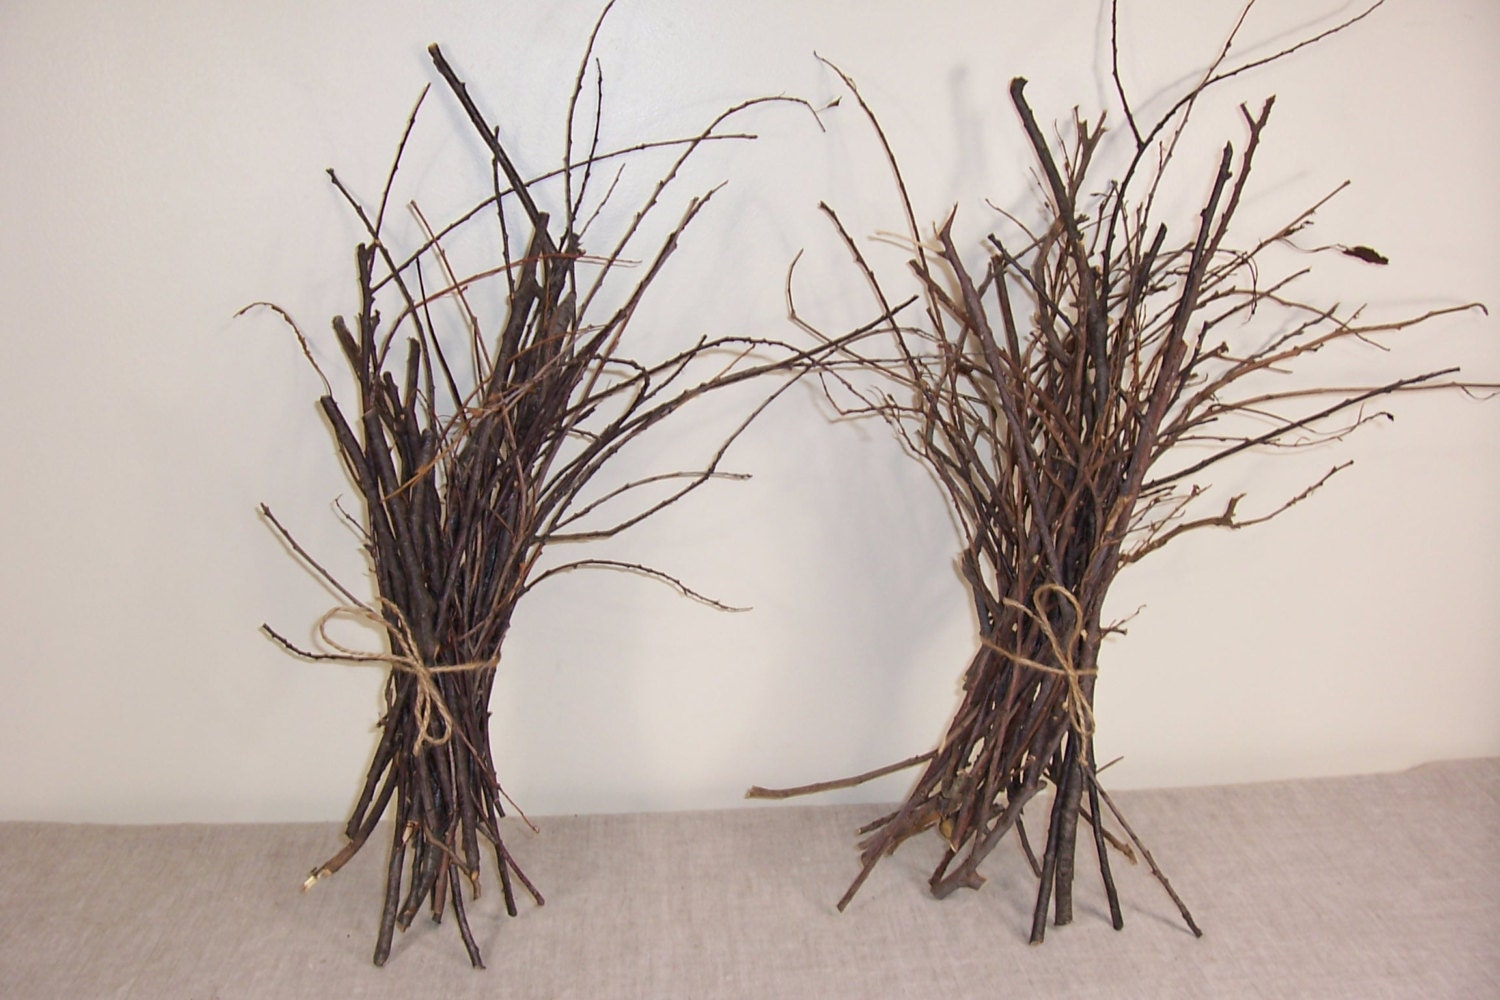 Branches twigs floral decor craft 12 25 vase rustic wedding sold by cassieschmidt reviewsmspy